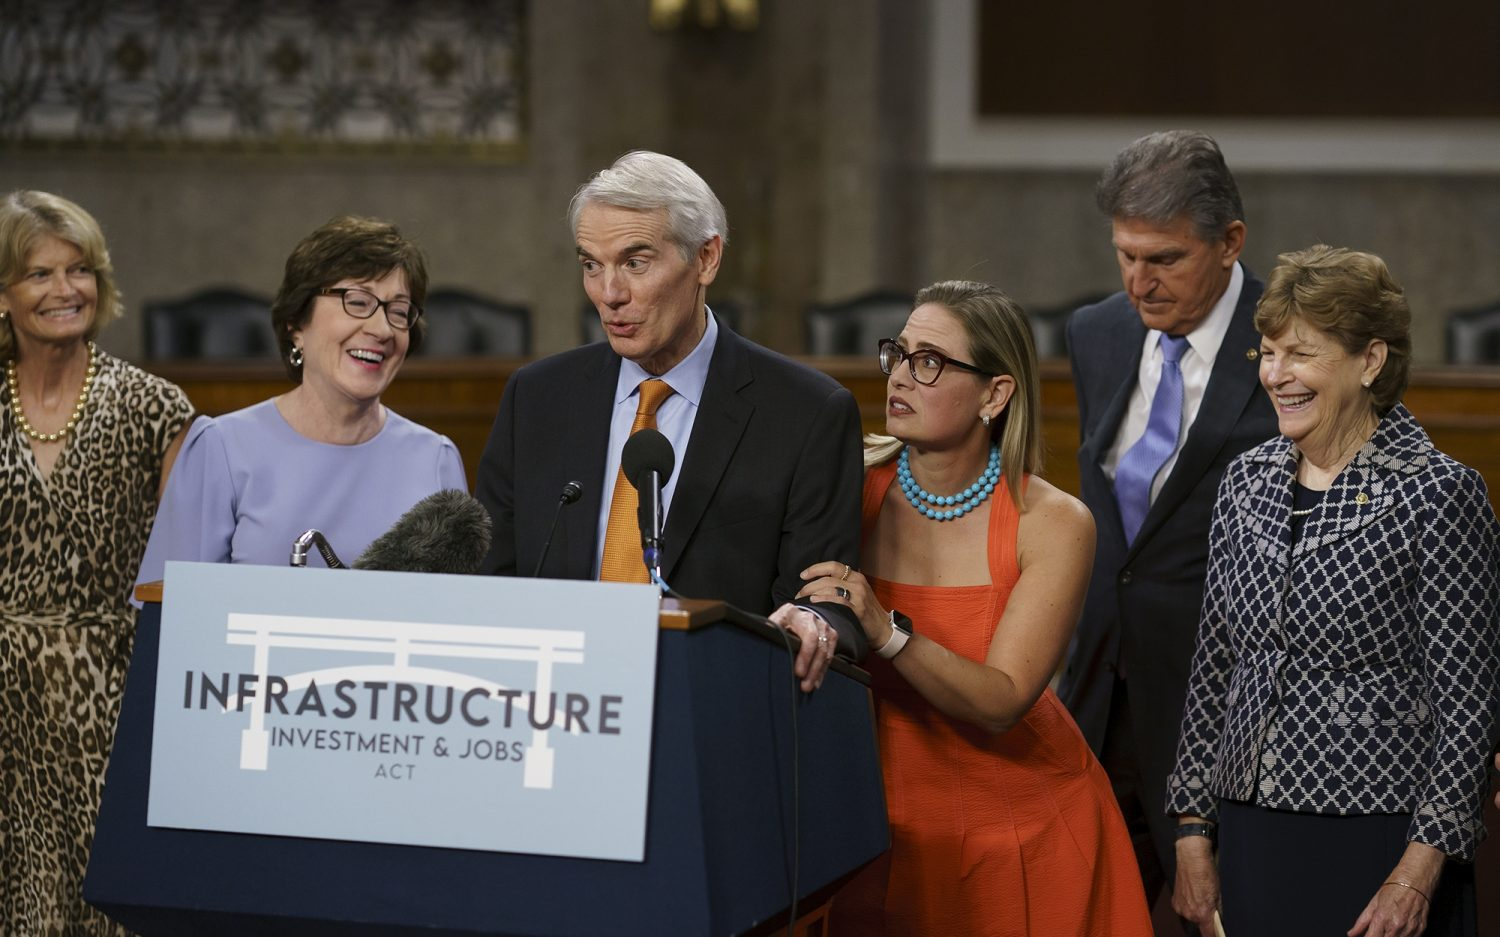 Congress builds infrastructure on financial sand